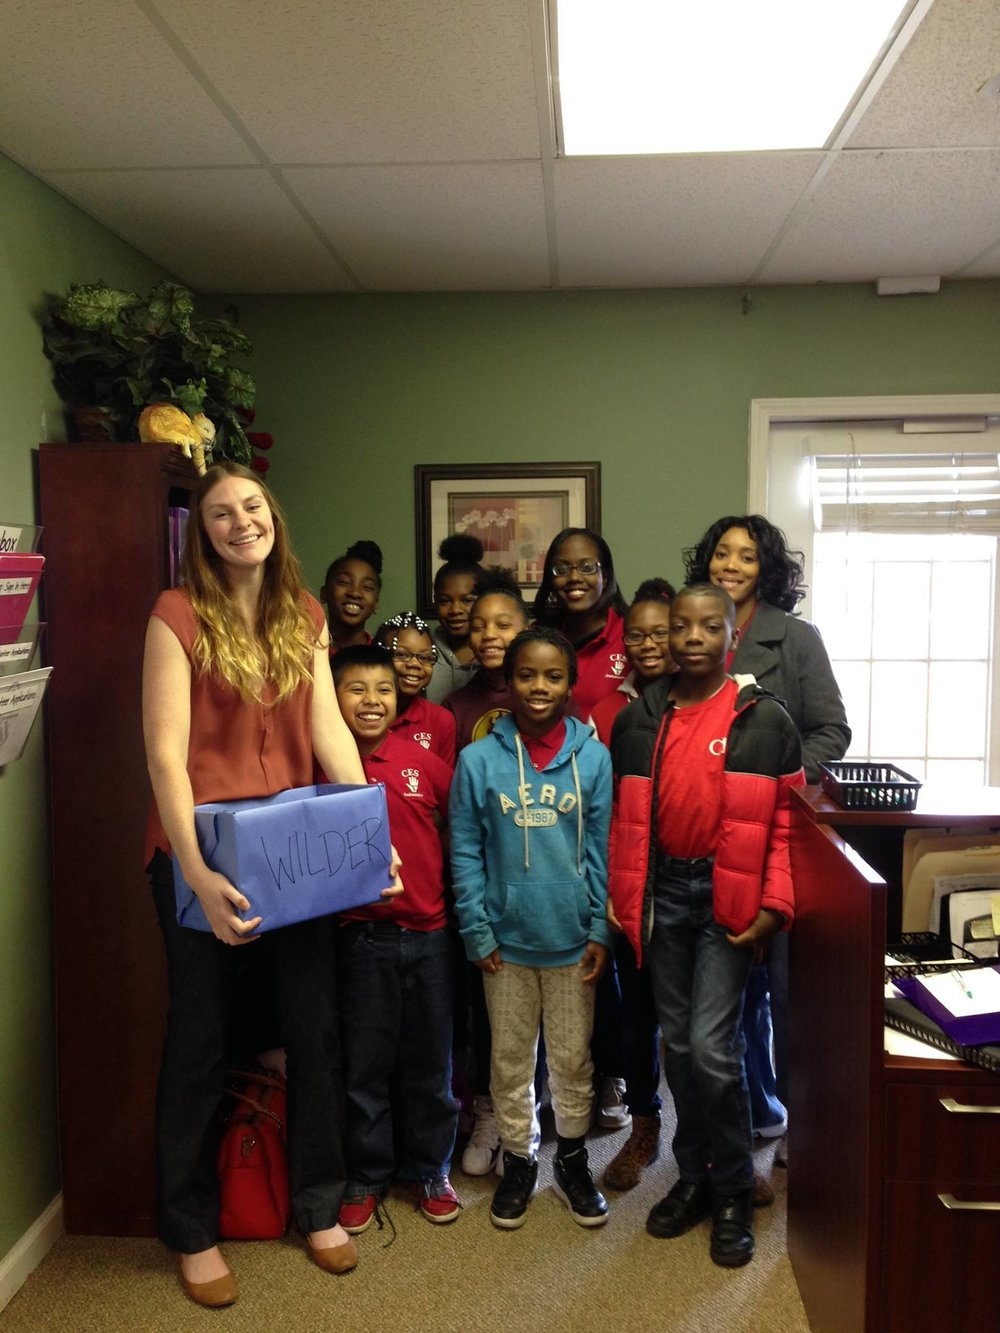 These lovely students from  Central Elementary School  dropped off donations they have been collecting since October. We're grateful for their big hearts & support! They are pictured with our Court Advocate, Alli.